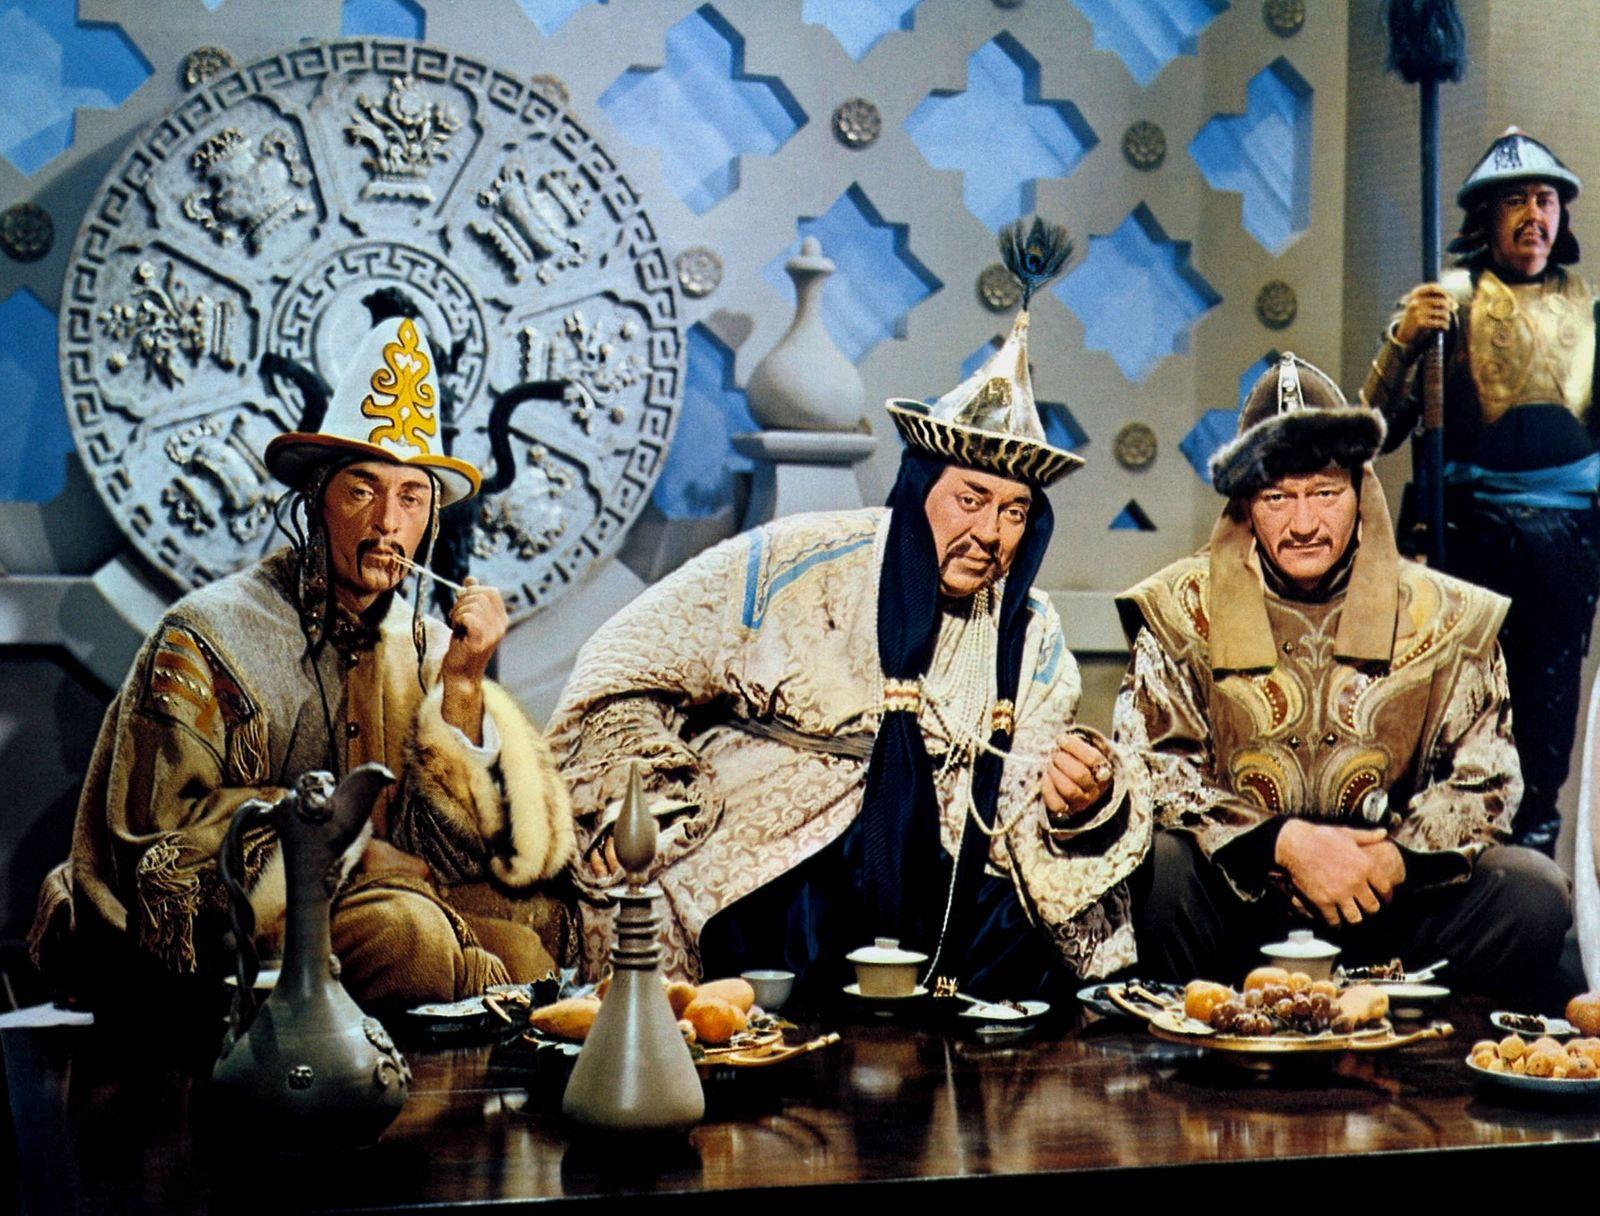 Scene With John Wayne Characters: WITH Temujin, later Genghis Khan Film: The Conqueror (1956) Director: Dick Powell 21 F